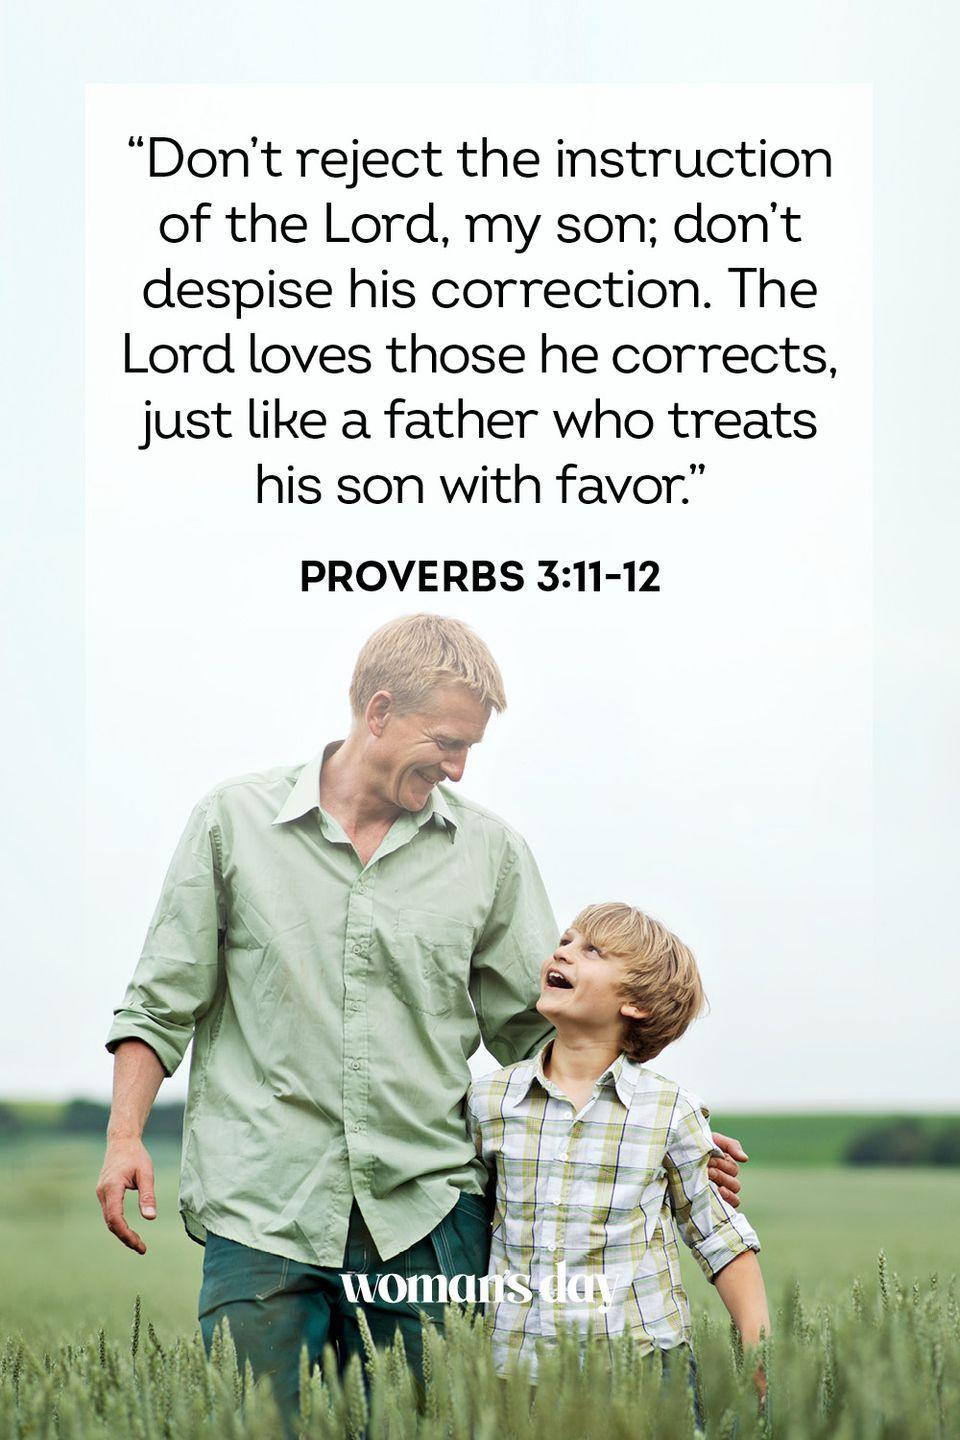 """<p>""""Don't reject the instruction of the Lord, my son; don't despise his correction. The Lord loves those he corrects, just like a father who treats his son with favor.""""</p><p><strong>The Good News:</strong> It isn't always easy to receive constructive feedback, whether that's from a boss or a father, but God reminds you that being gently corrected in life is a sign of true love. Dad just cares enough to voice his opinion.</p>"""